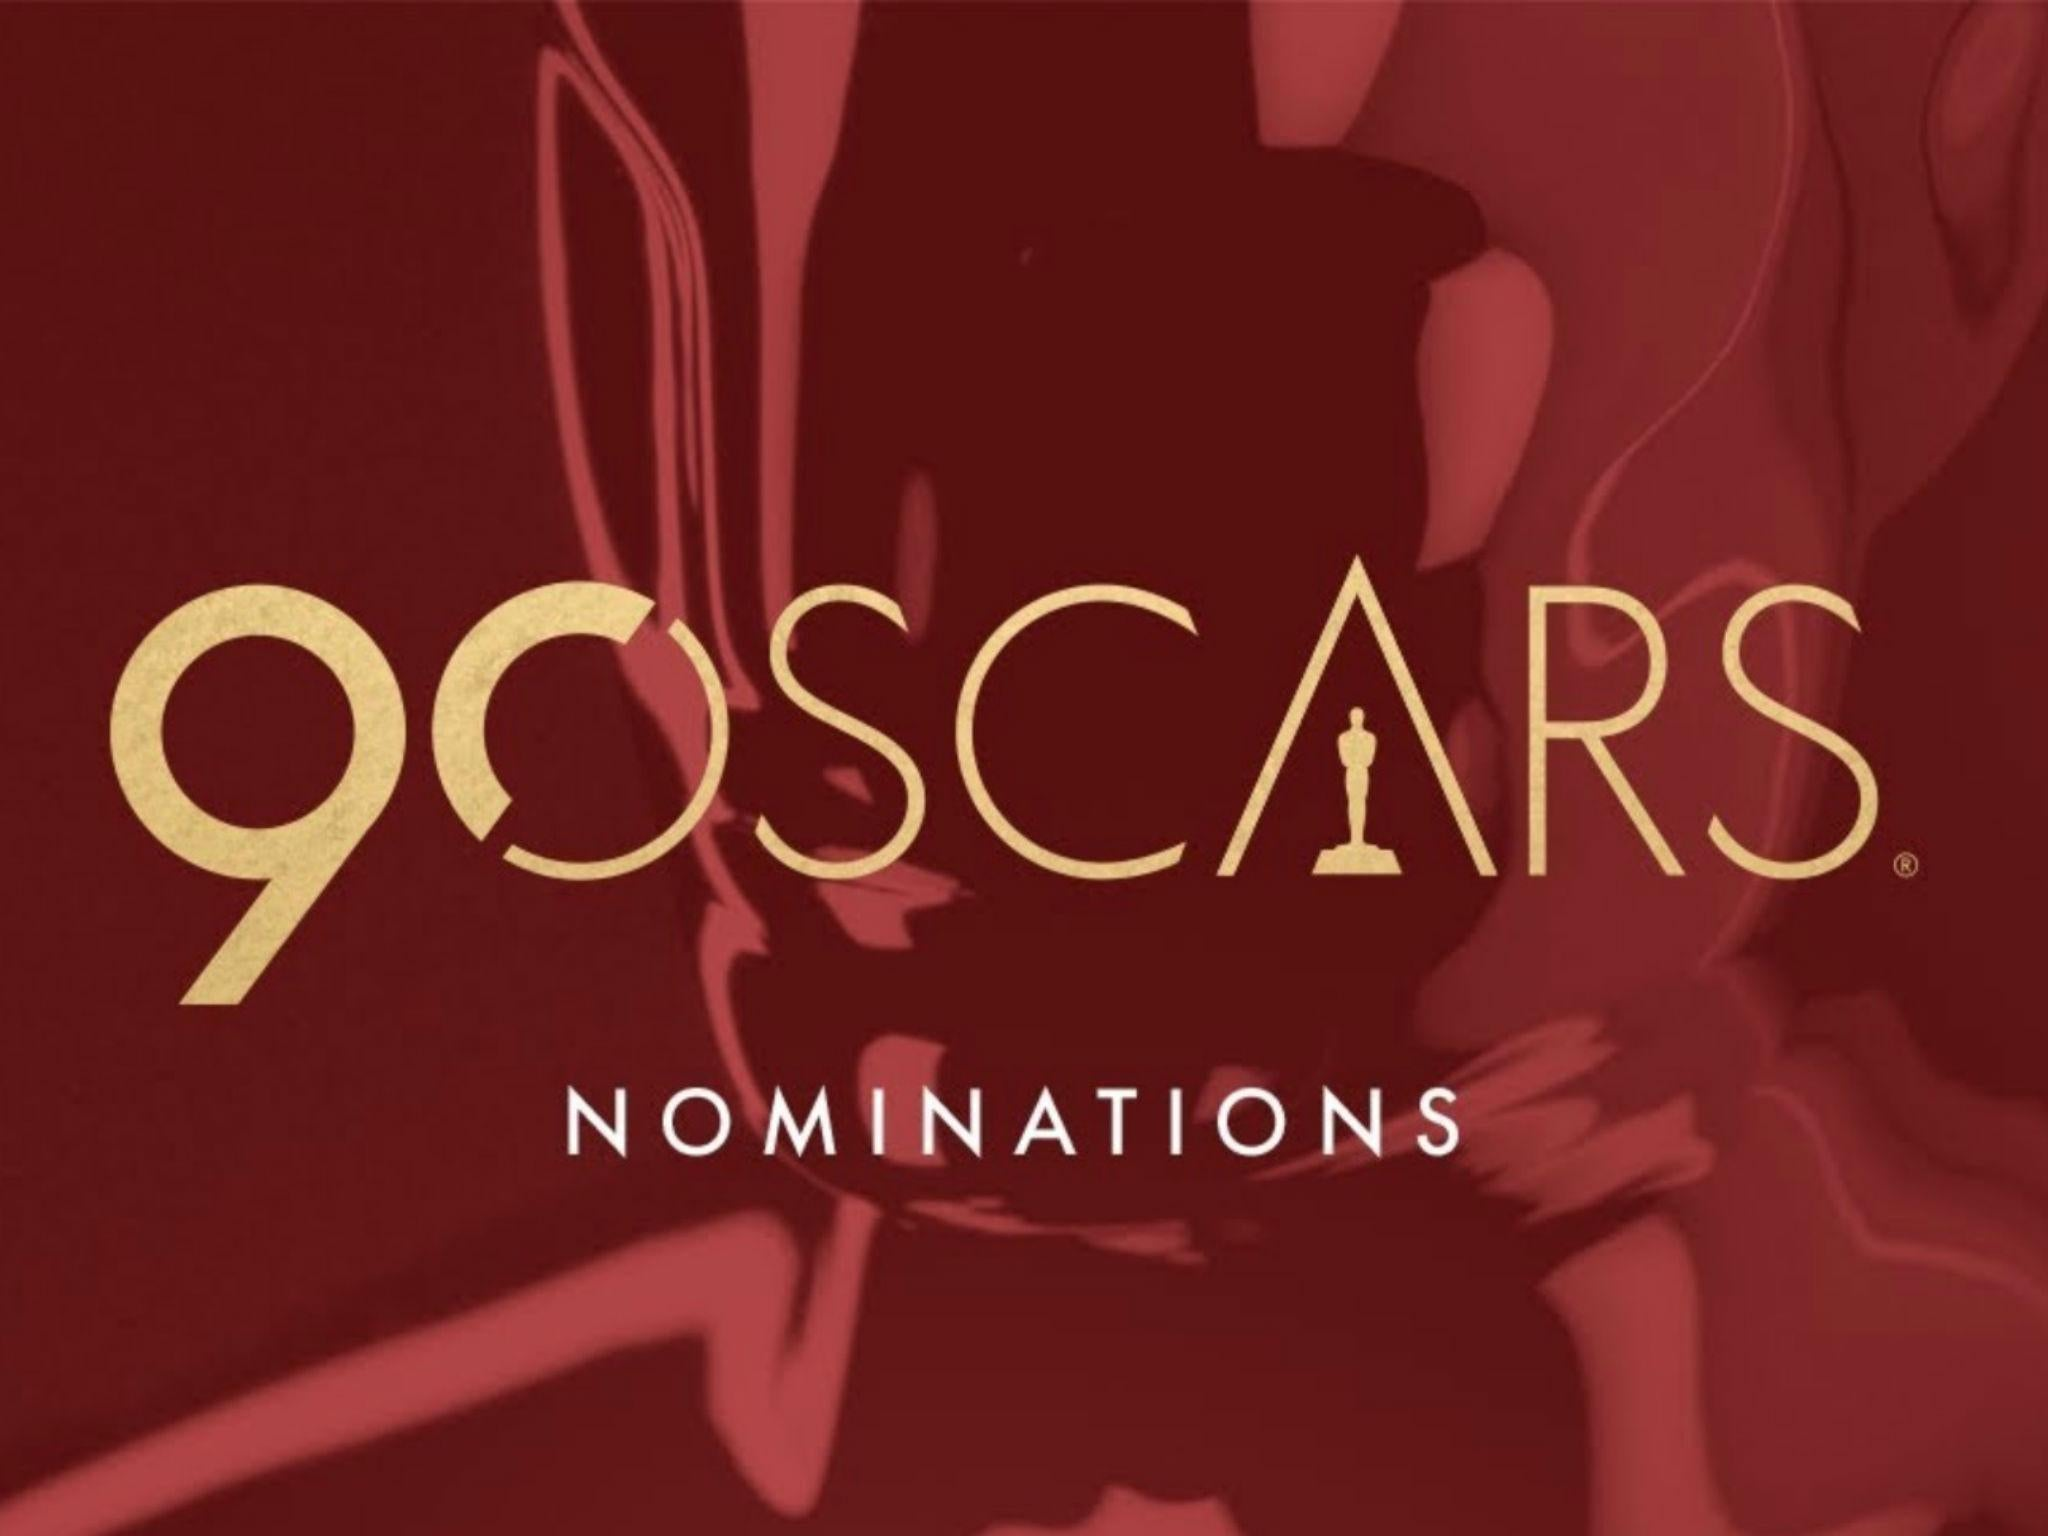 Oscar nominations 2018 - live updates: What time are they being announced and how to watch online